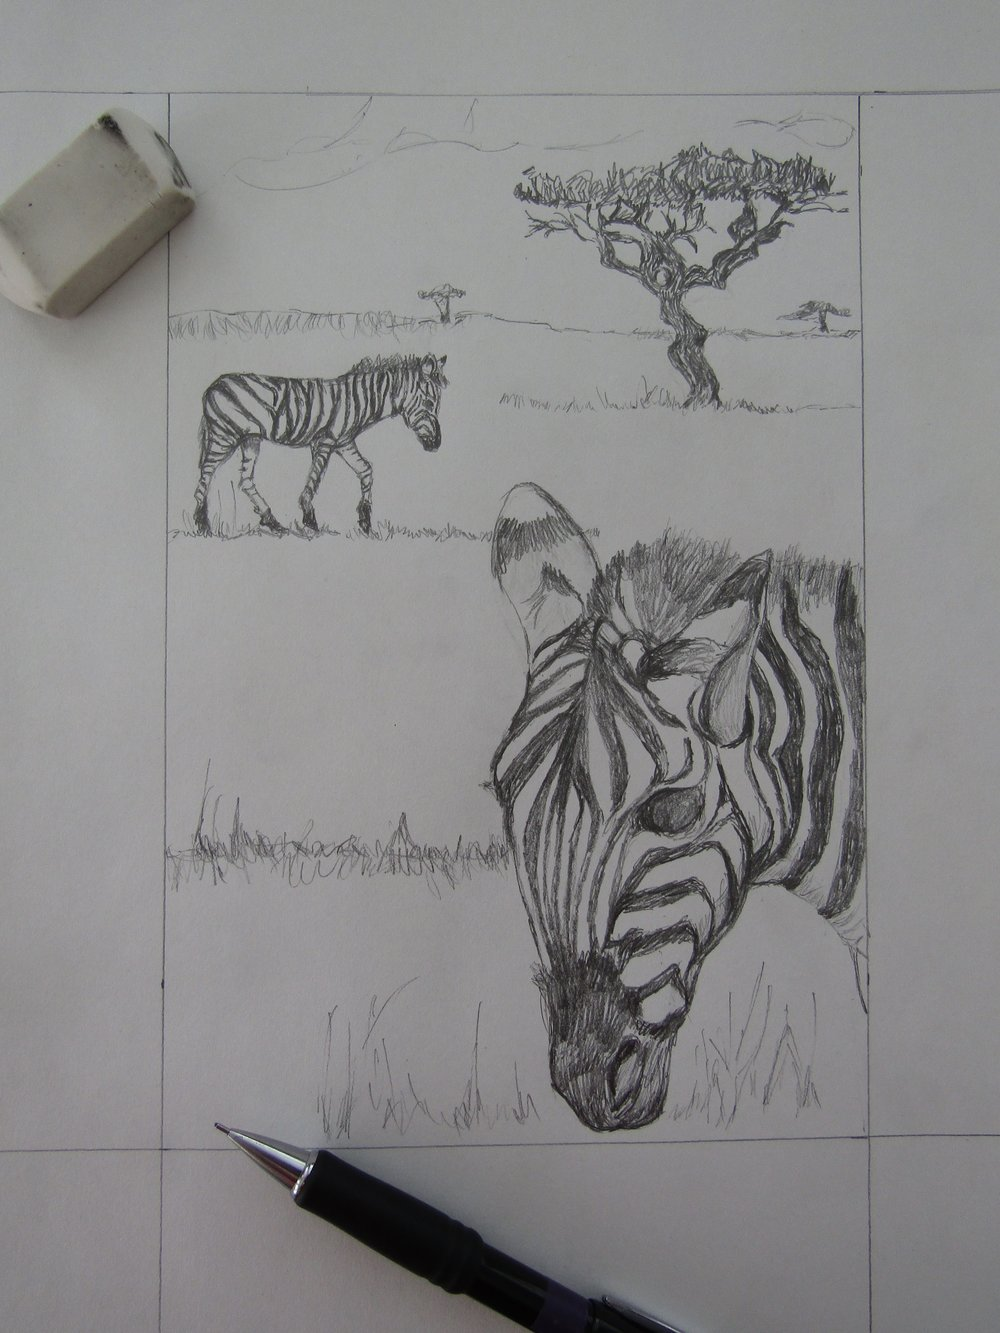 I combined various pictures I took of zebras and acacia trees for this drawing.